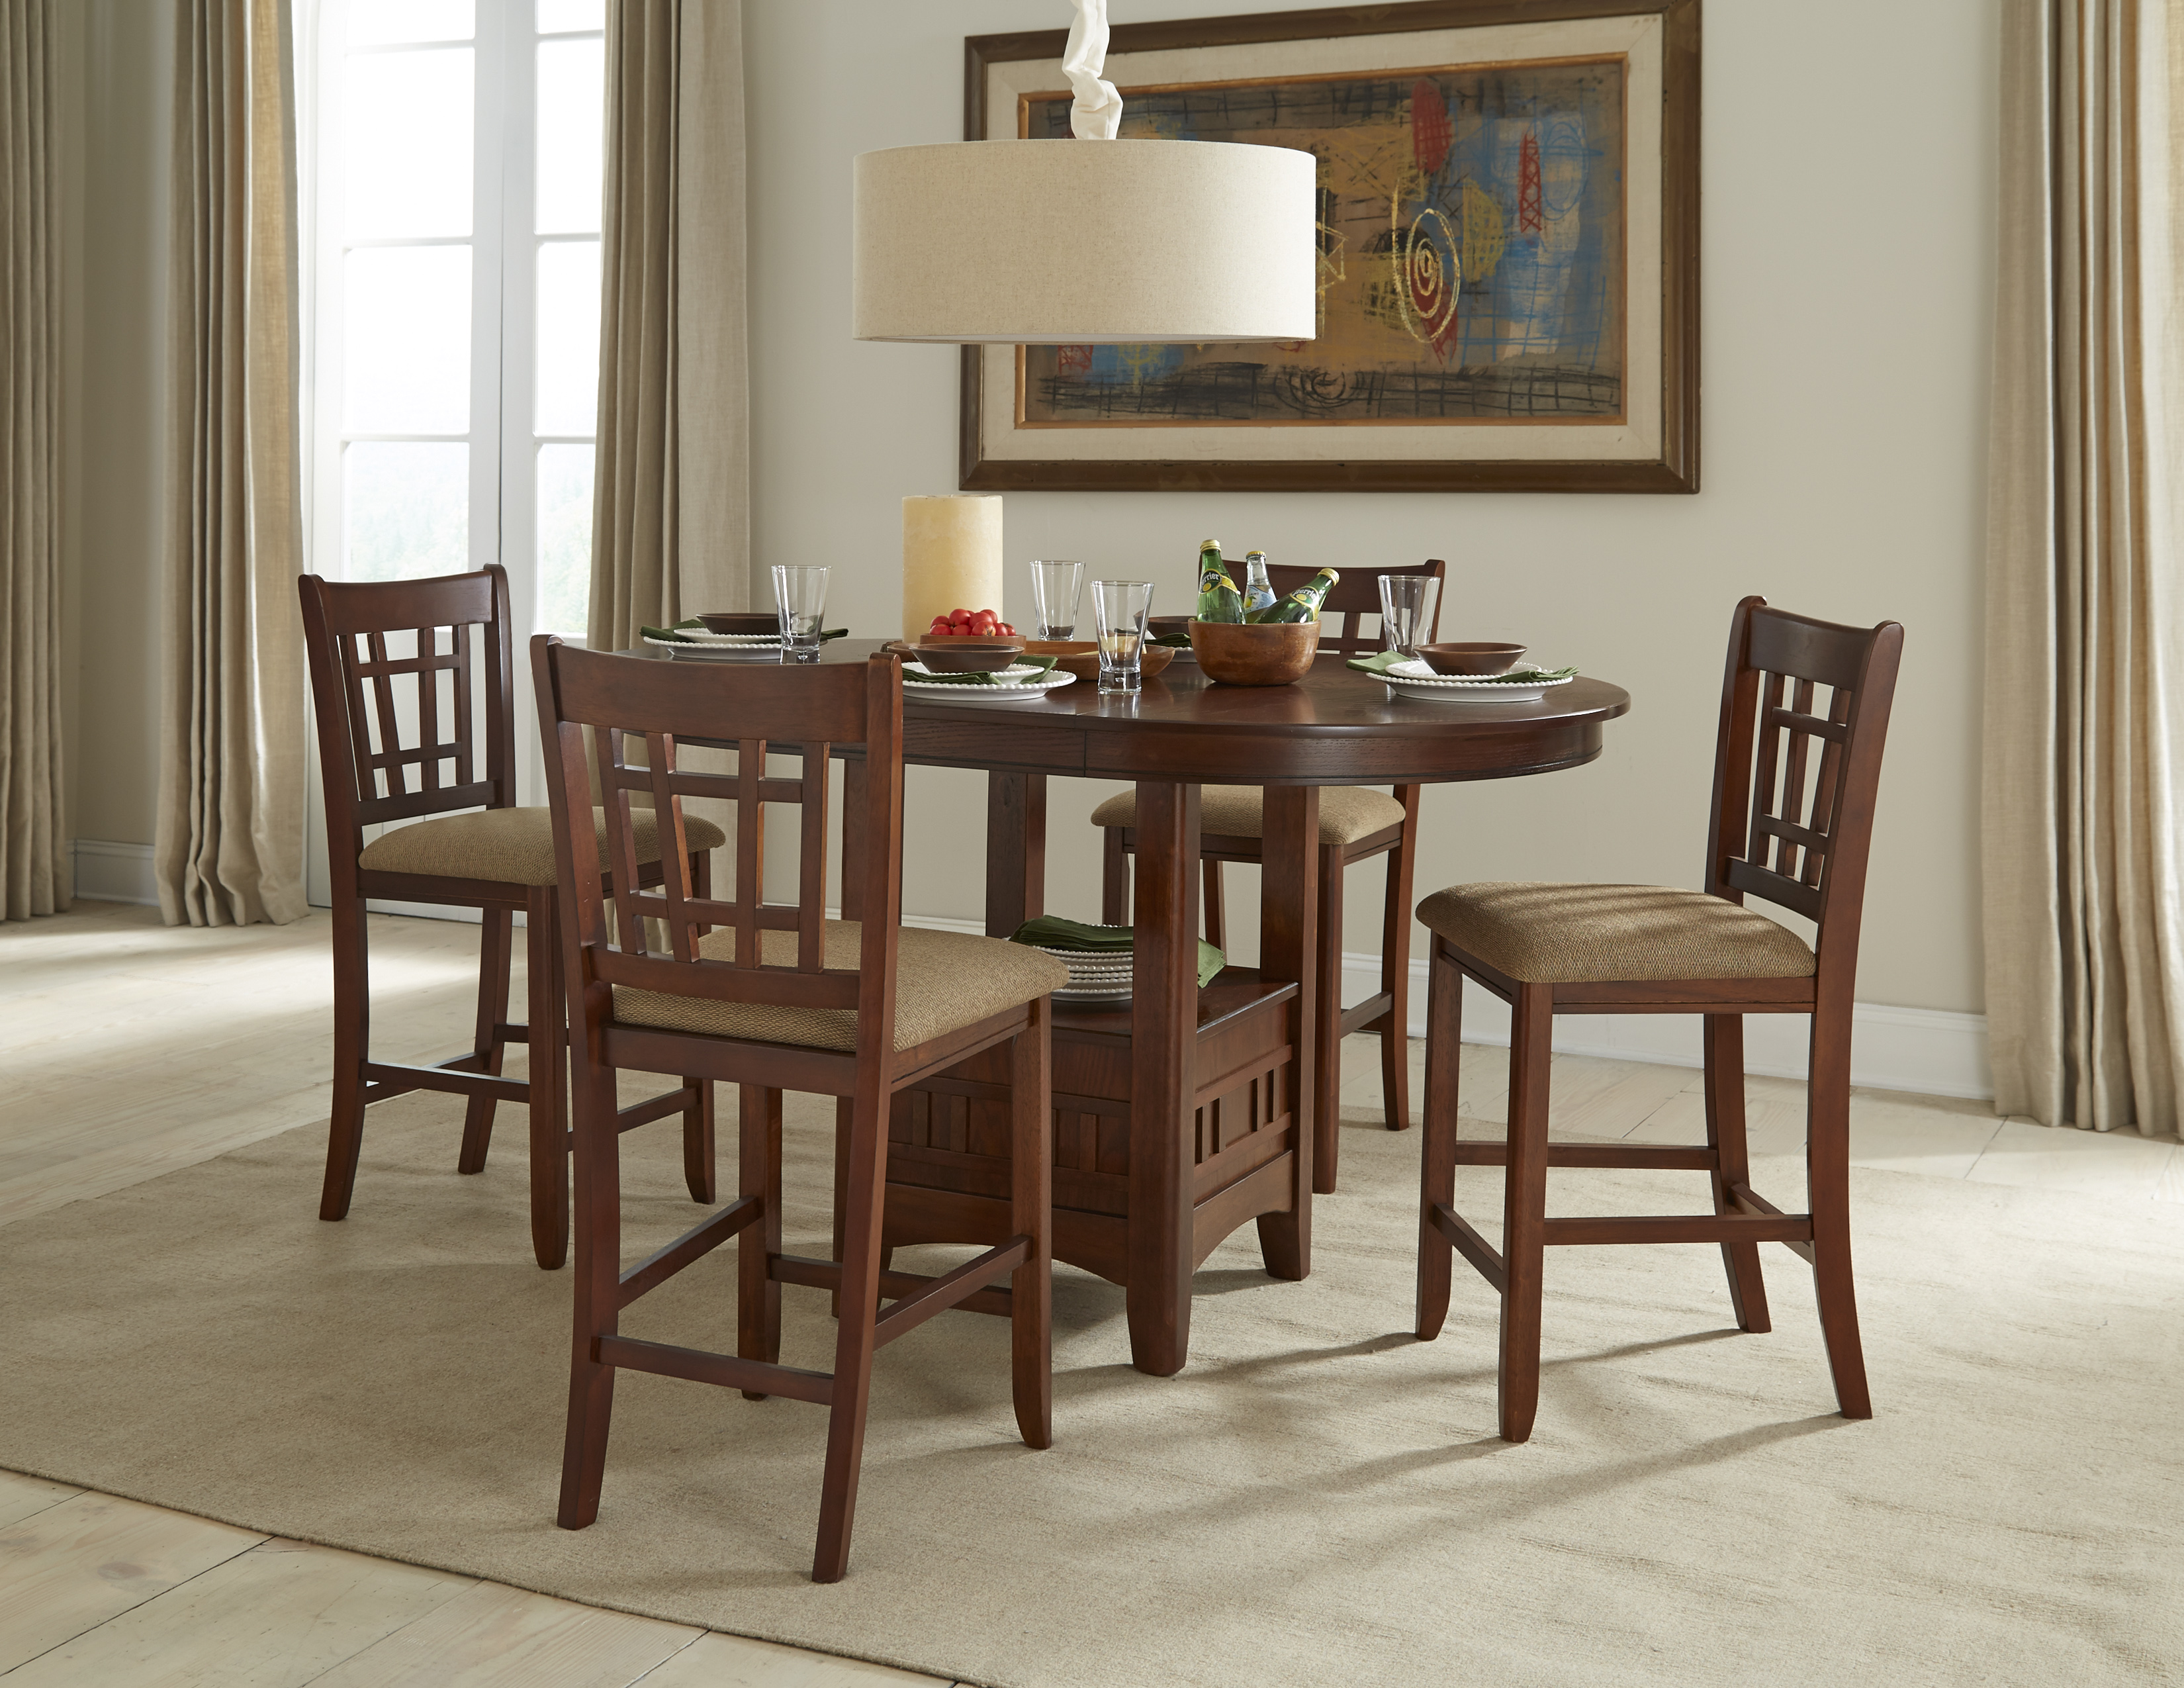 Intercon Mission Casuals 5-Piece Gathering Set - Item Number: MI-TA-4260G-DMI-BSE+TOP+4x850C-K24